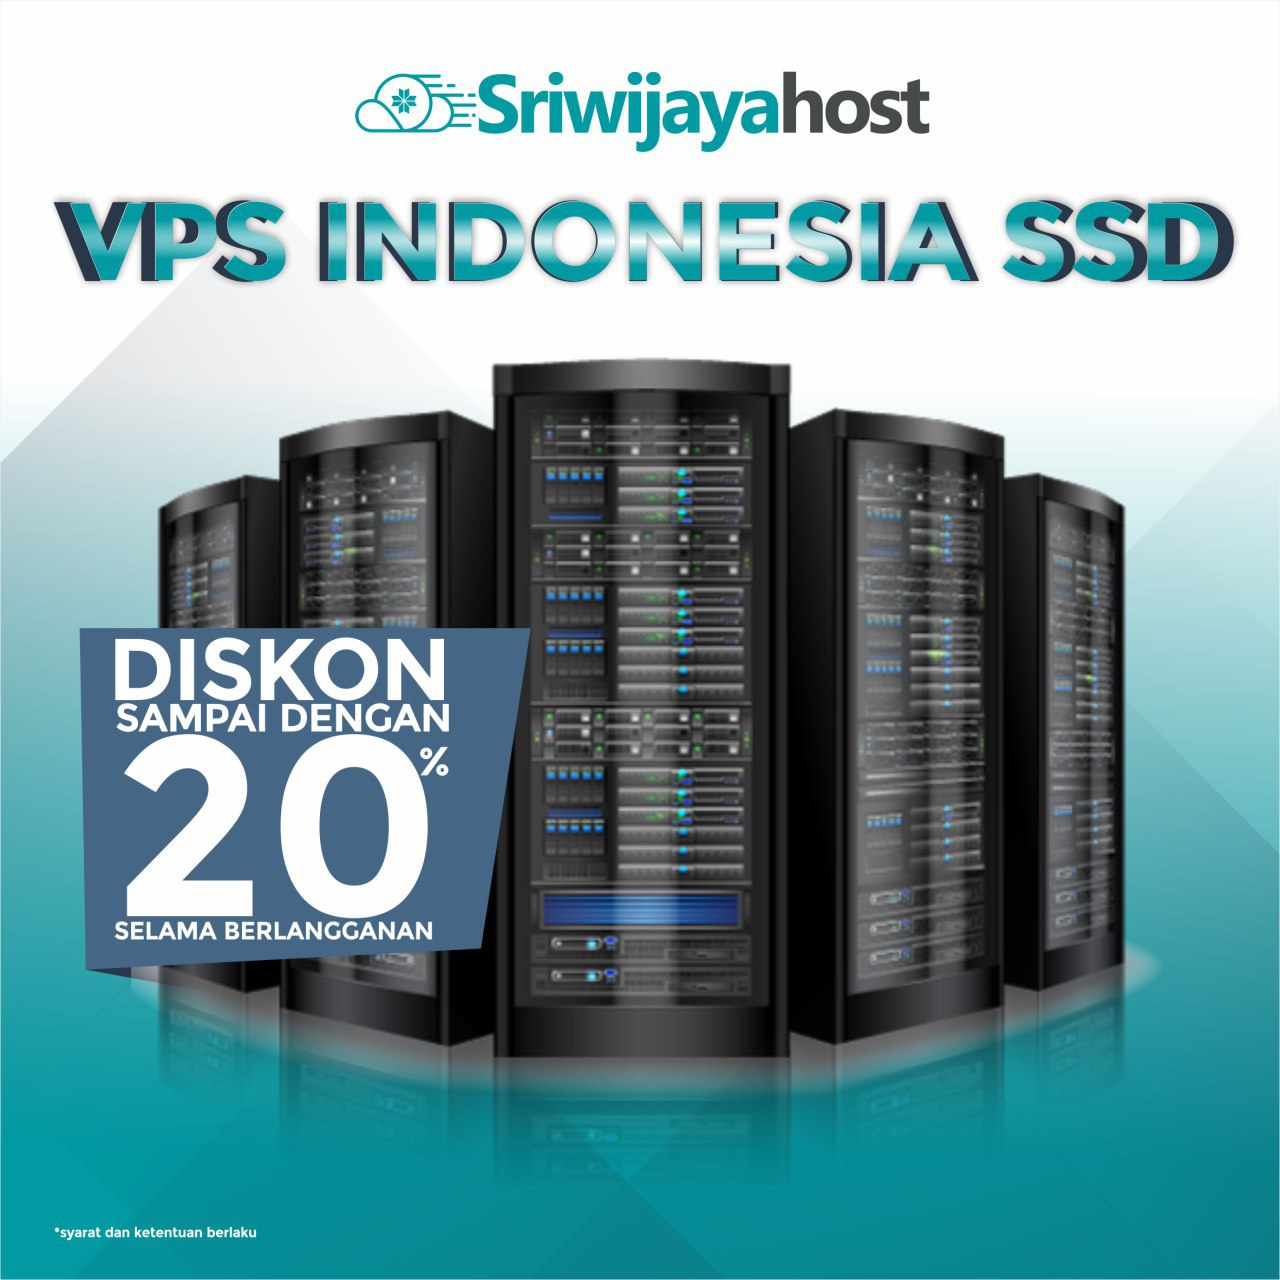 Promo VPS Indonesia SSD